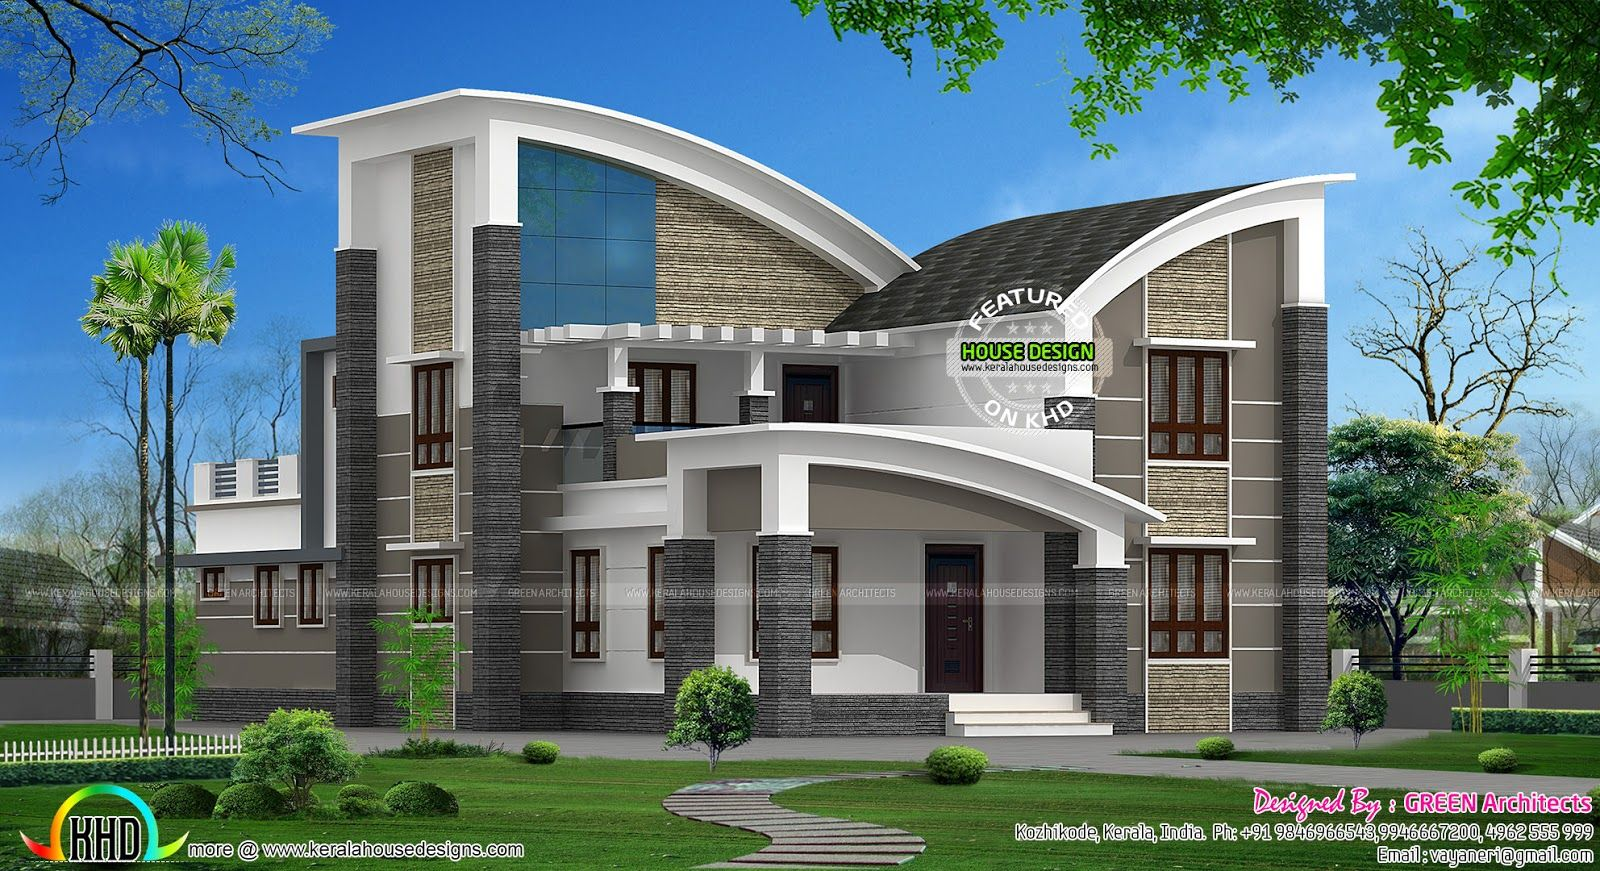 Modern style curved roof villa home inspiration for Home building ideas